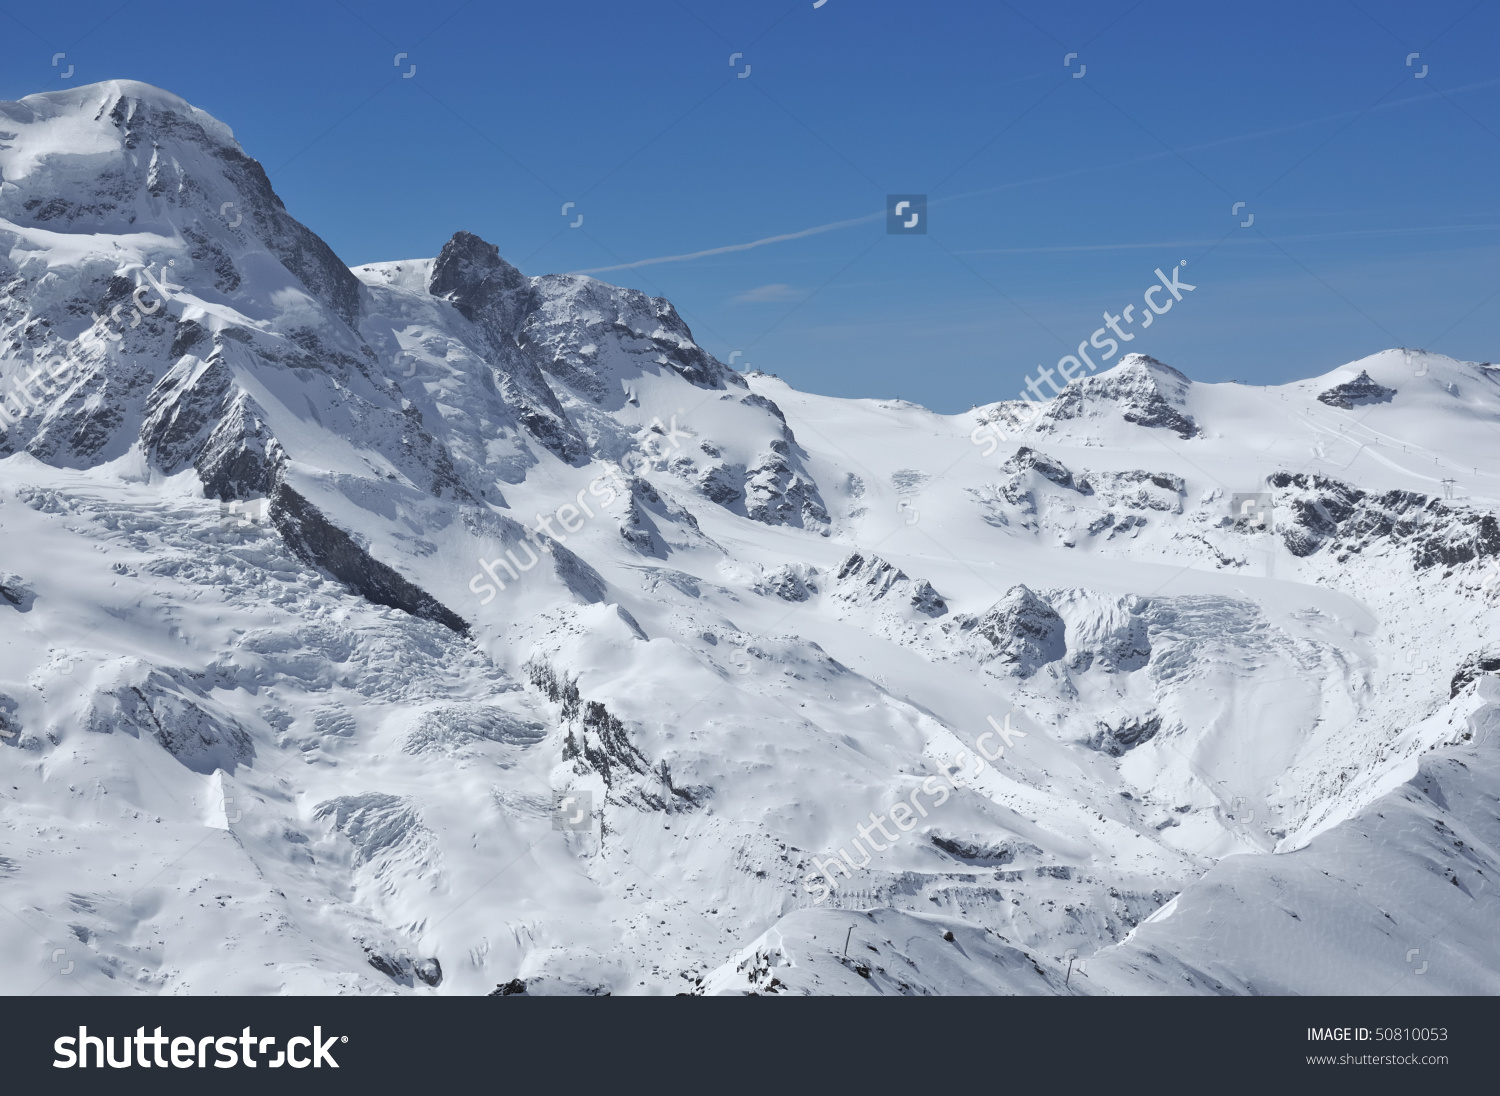 The Breithorn And The Kleiner Matterhorn In The Winter Above.